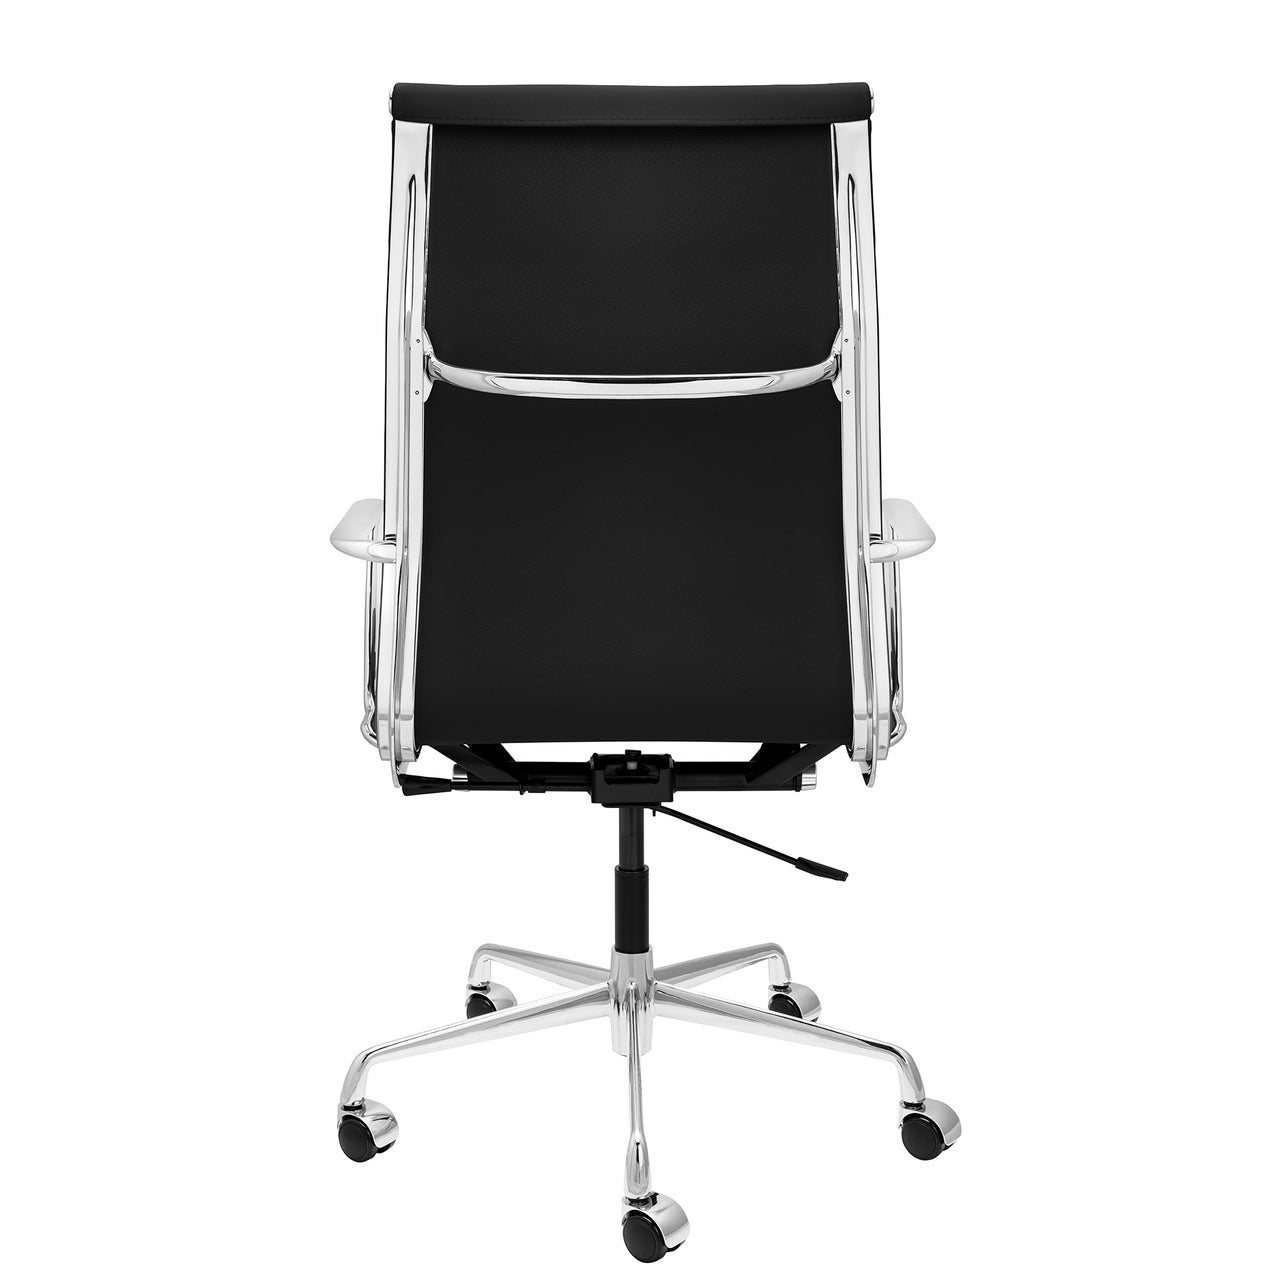 SOHO Pro Tall Back Soft Pad Management Chair (Black Italian Leather)